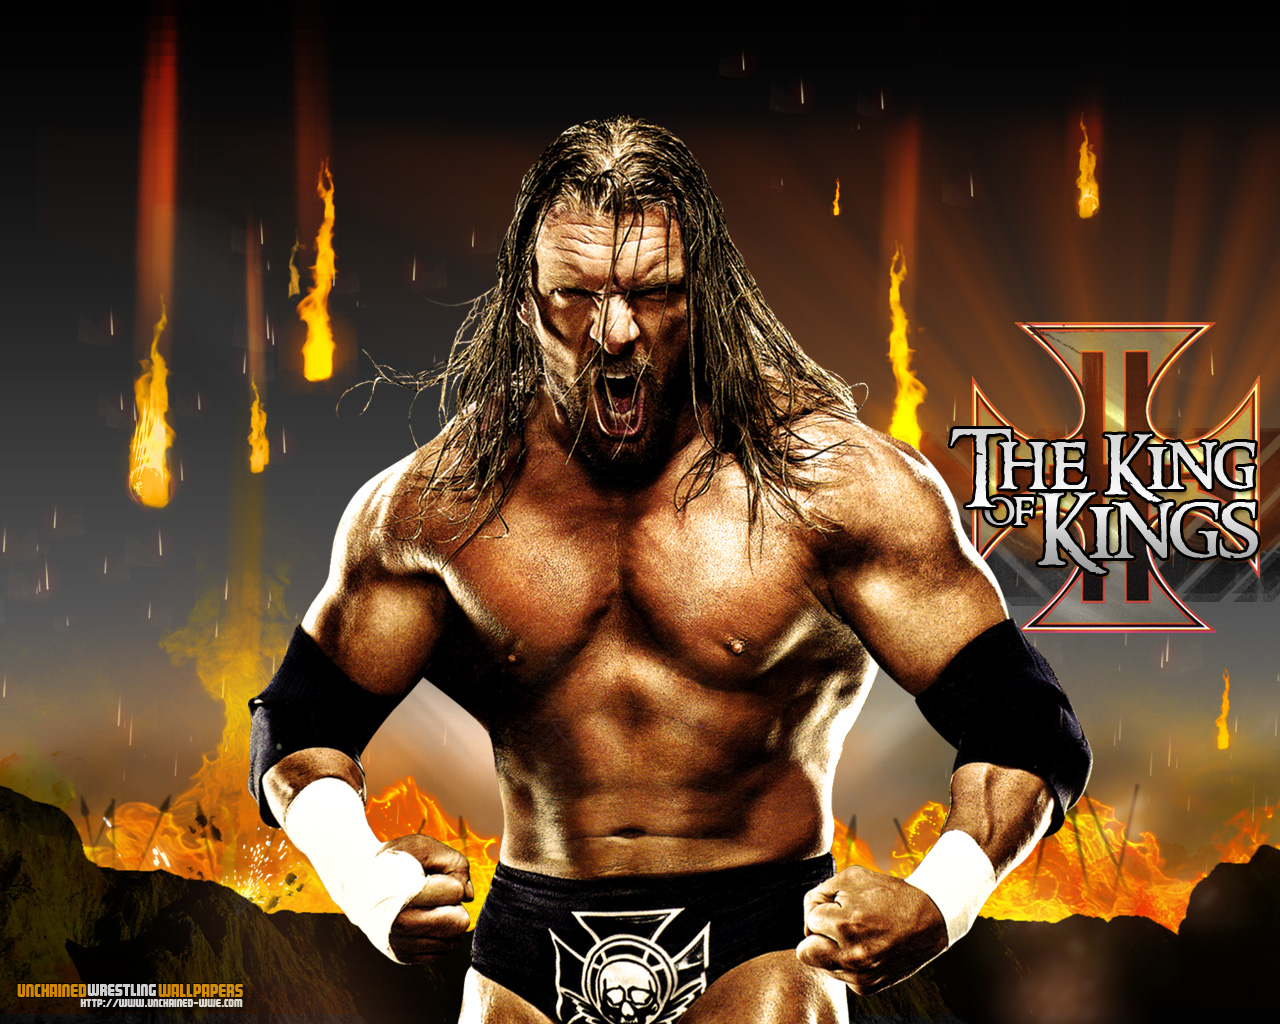 Download HQ The King of Kings Wrestling WWE Wallpaper Num 2 1280x1024